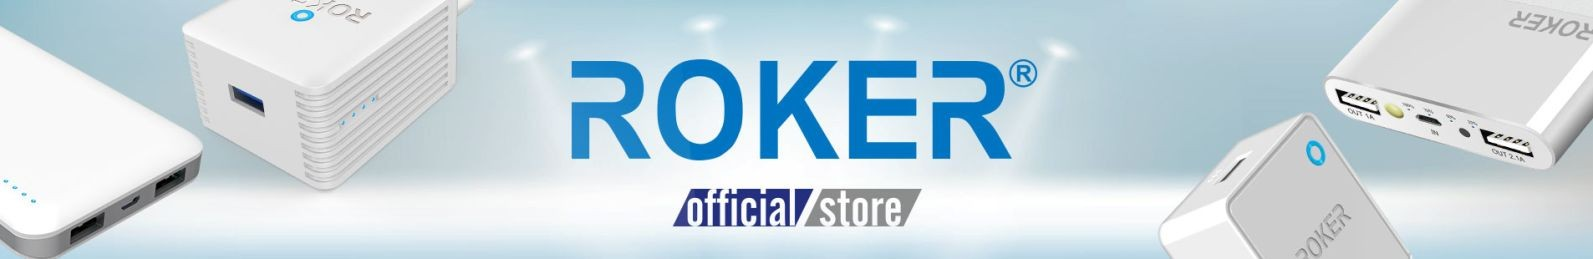 Roker Official Store